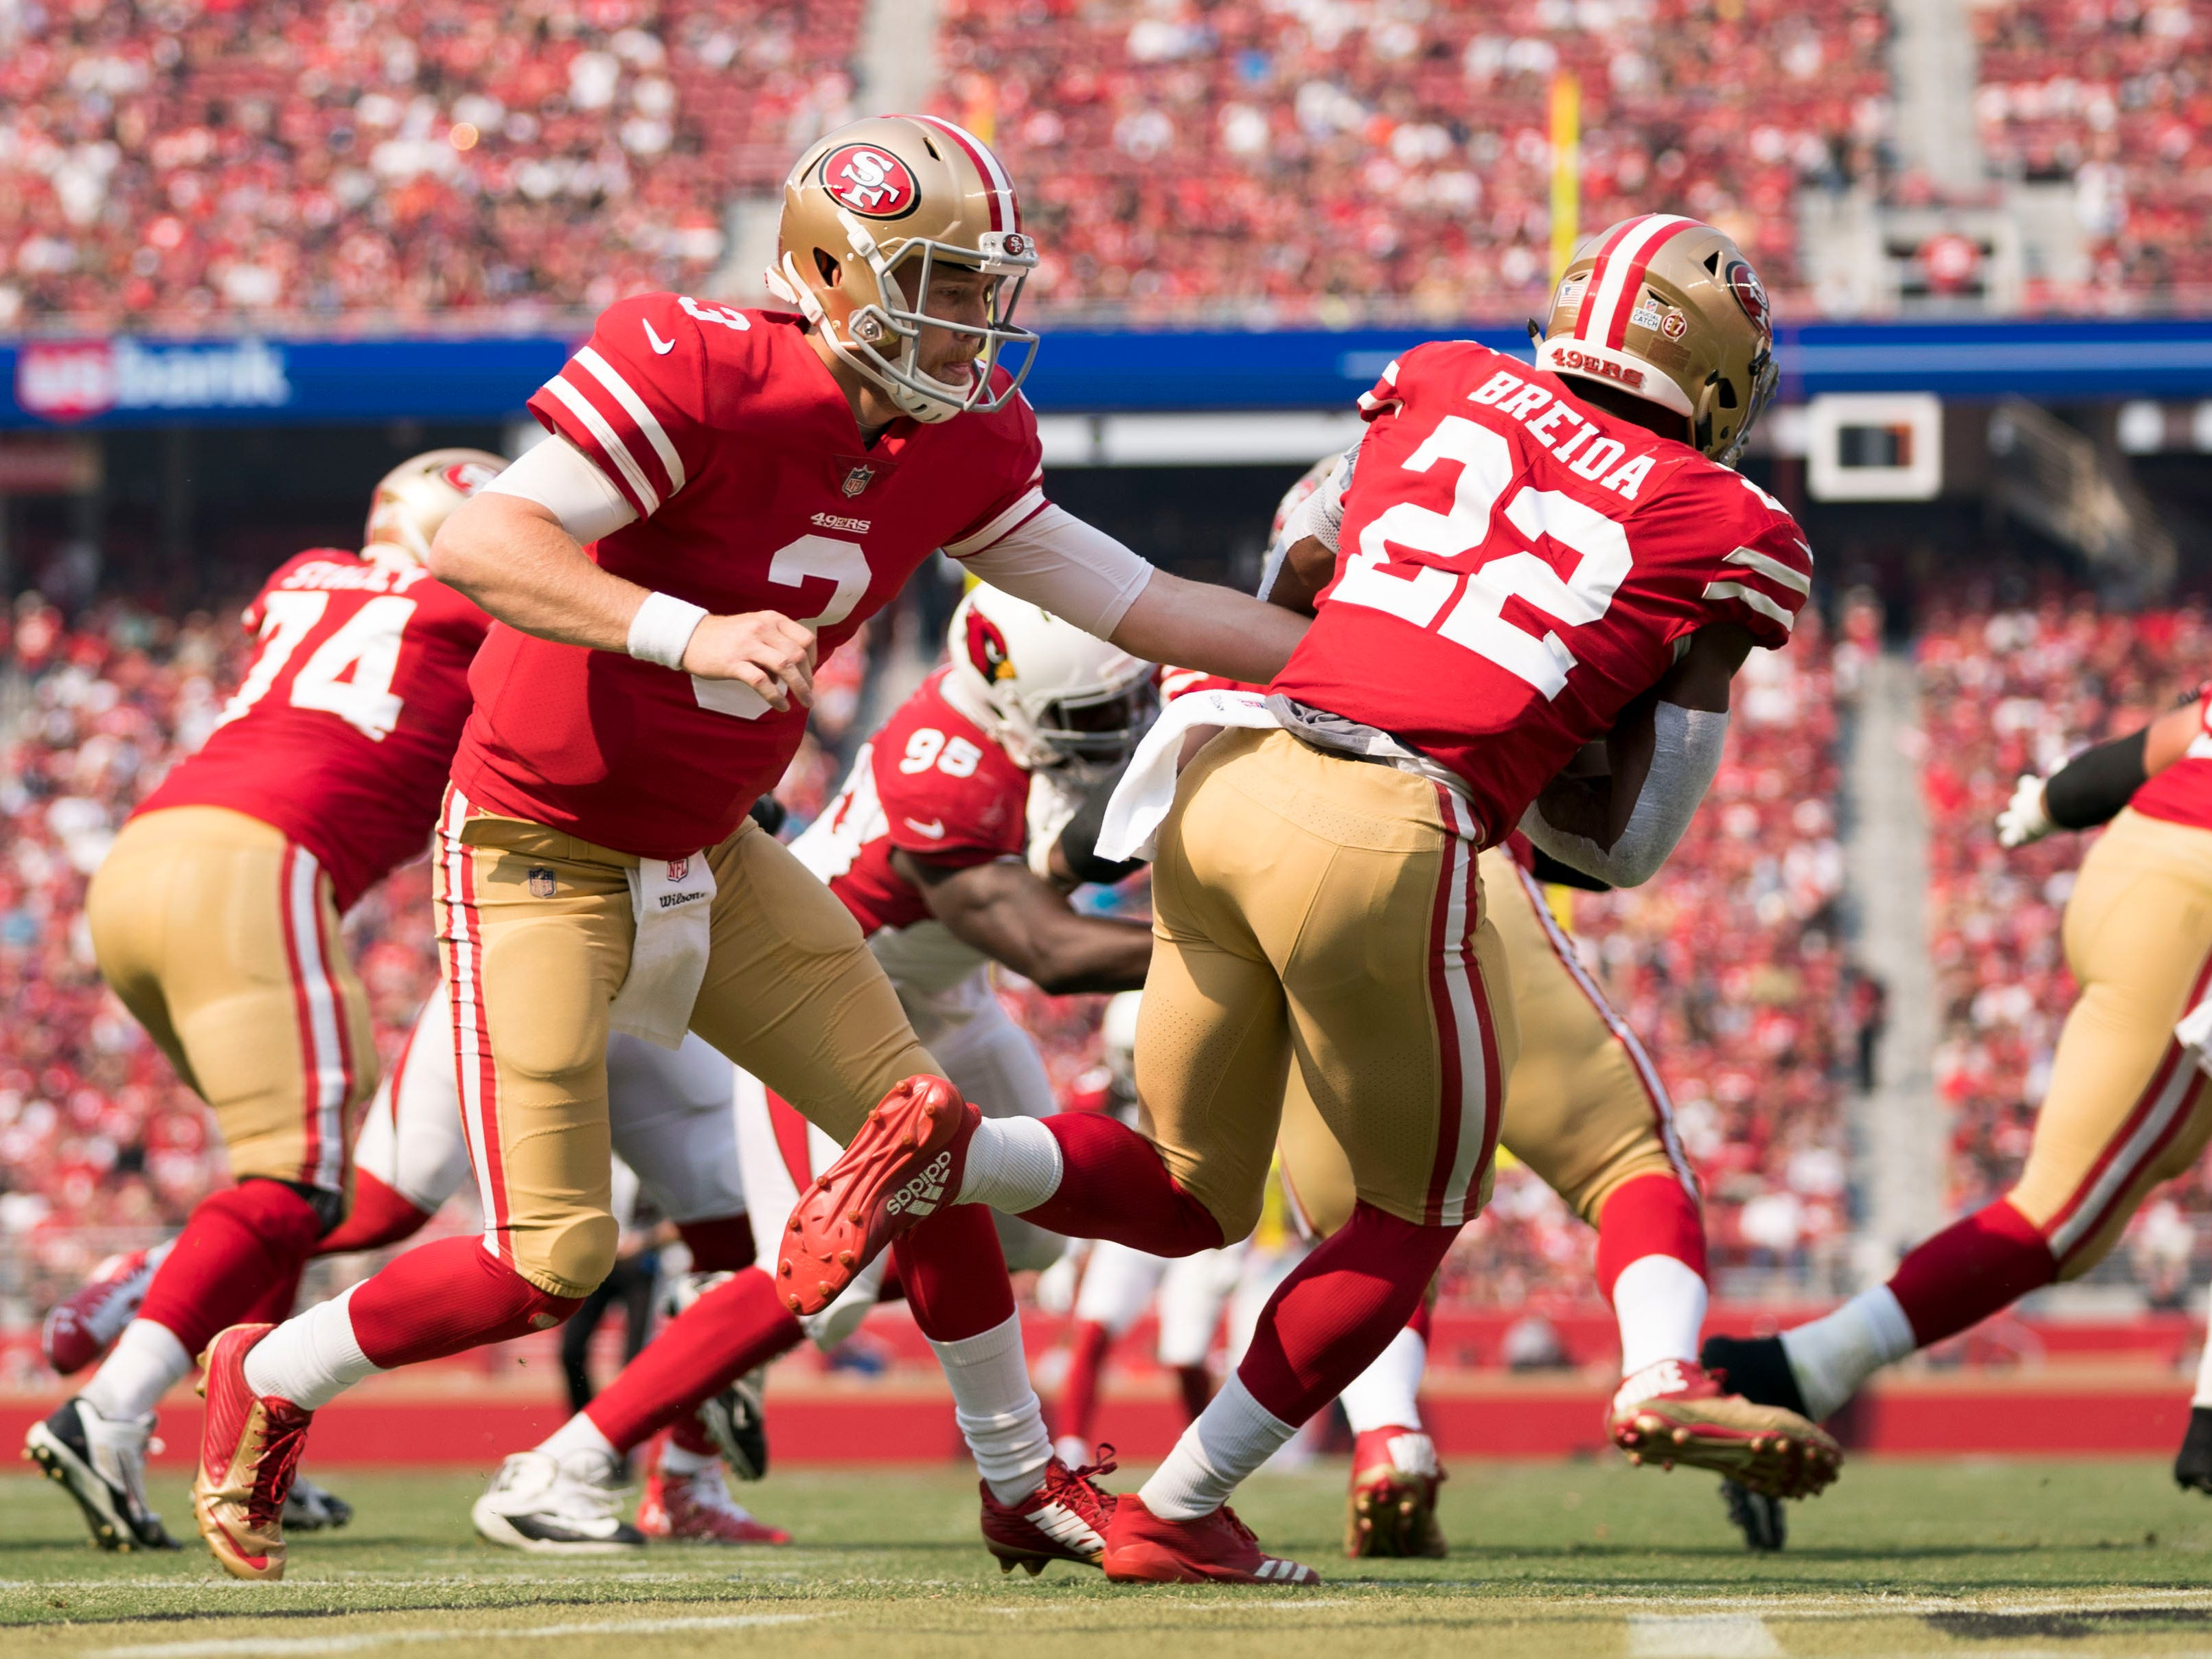 October 7, 2018; Santa Clara, CA, USA; San Francisco 49ers quarterback C.J. Beathard (3) hands the football to running back Matt Breida (22) against the Arizona Cardinals during the first quarter at Levi's Stadium. Mandatory Credit: Kyle Terada-USA TODAY Sports